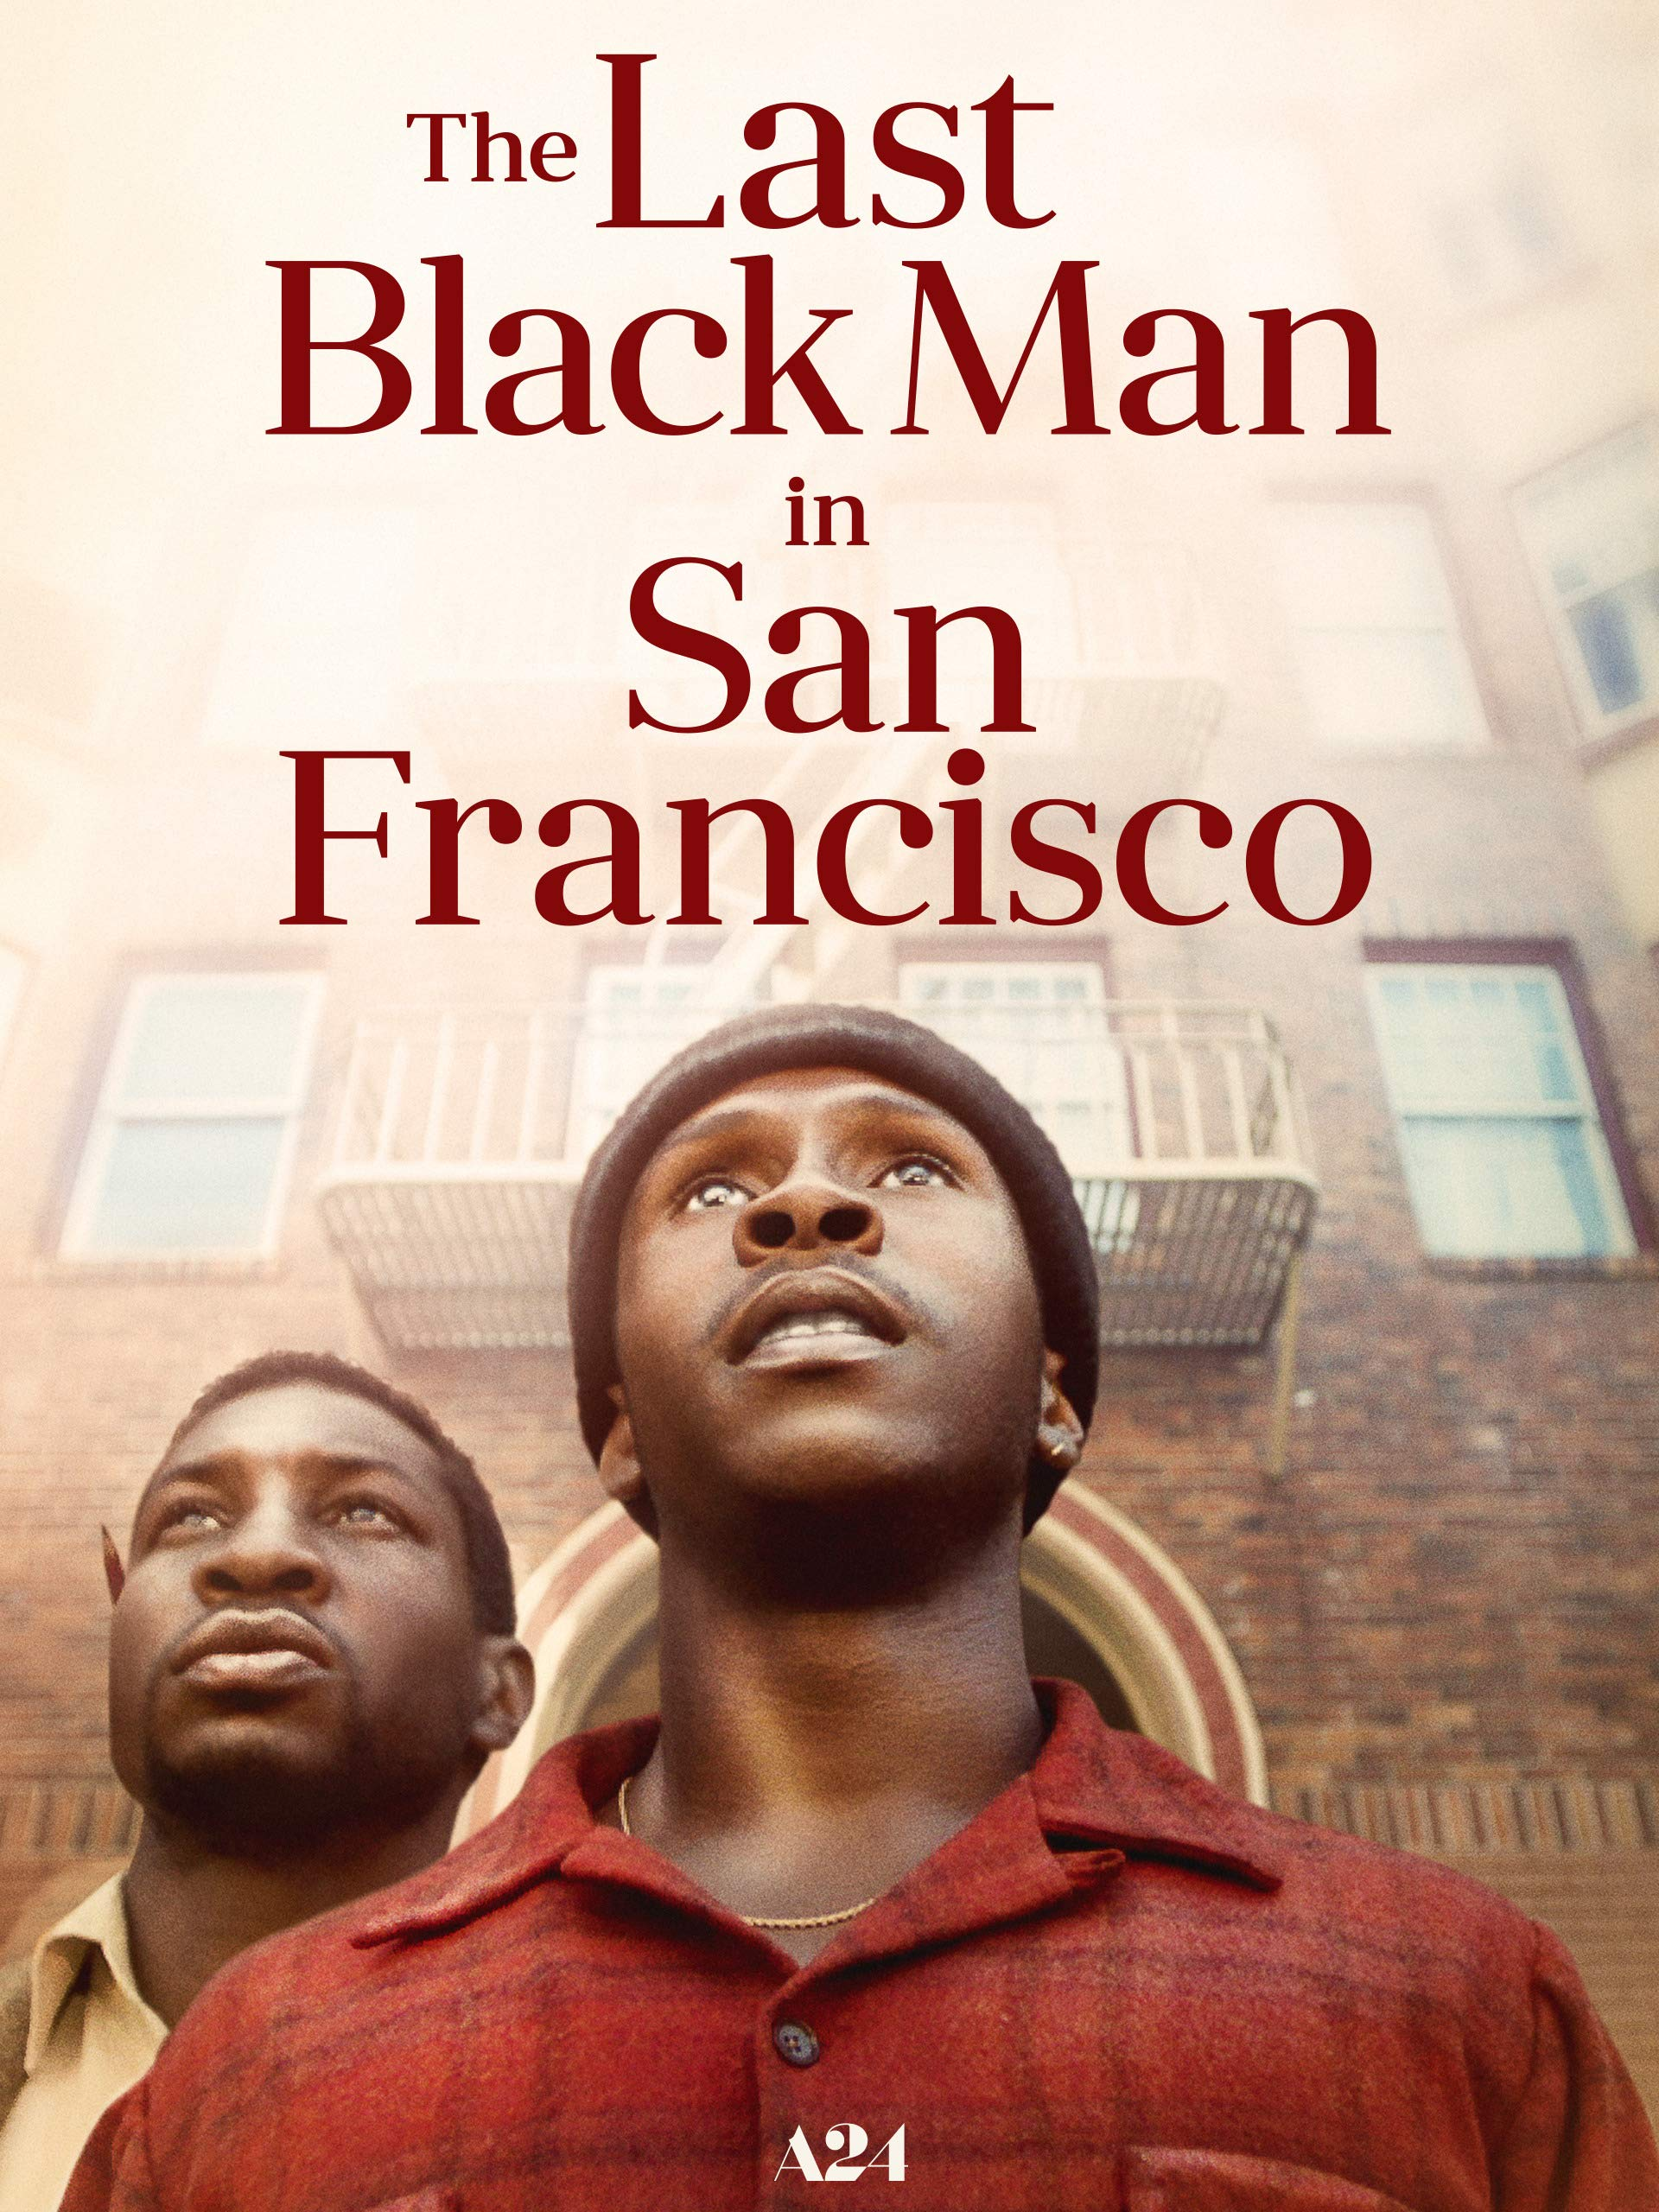 picture of two black men and the last black man in san francisco written in read above them